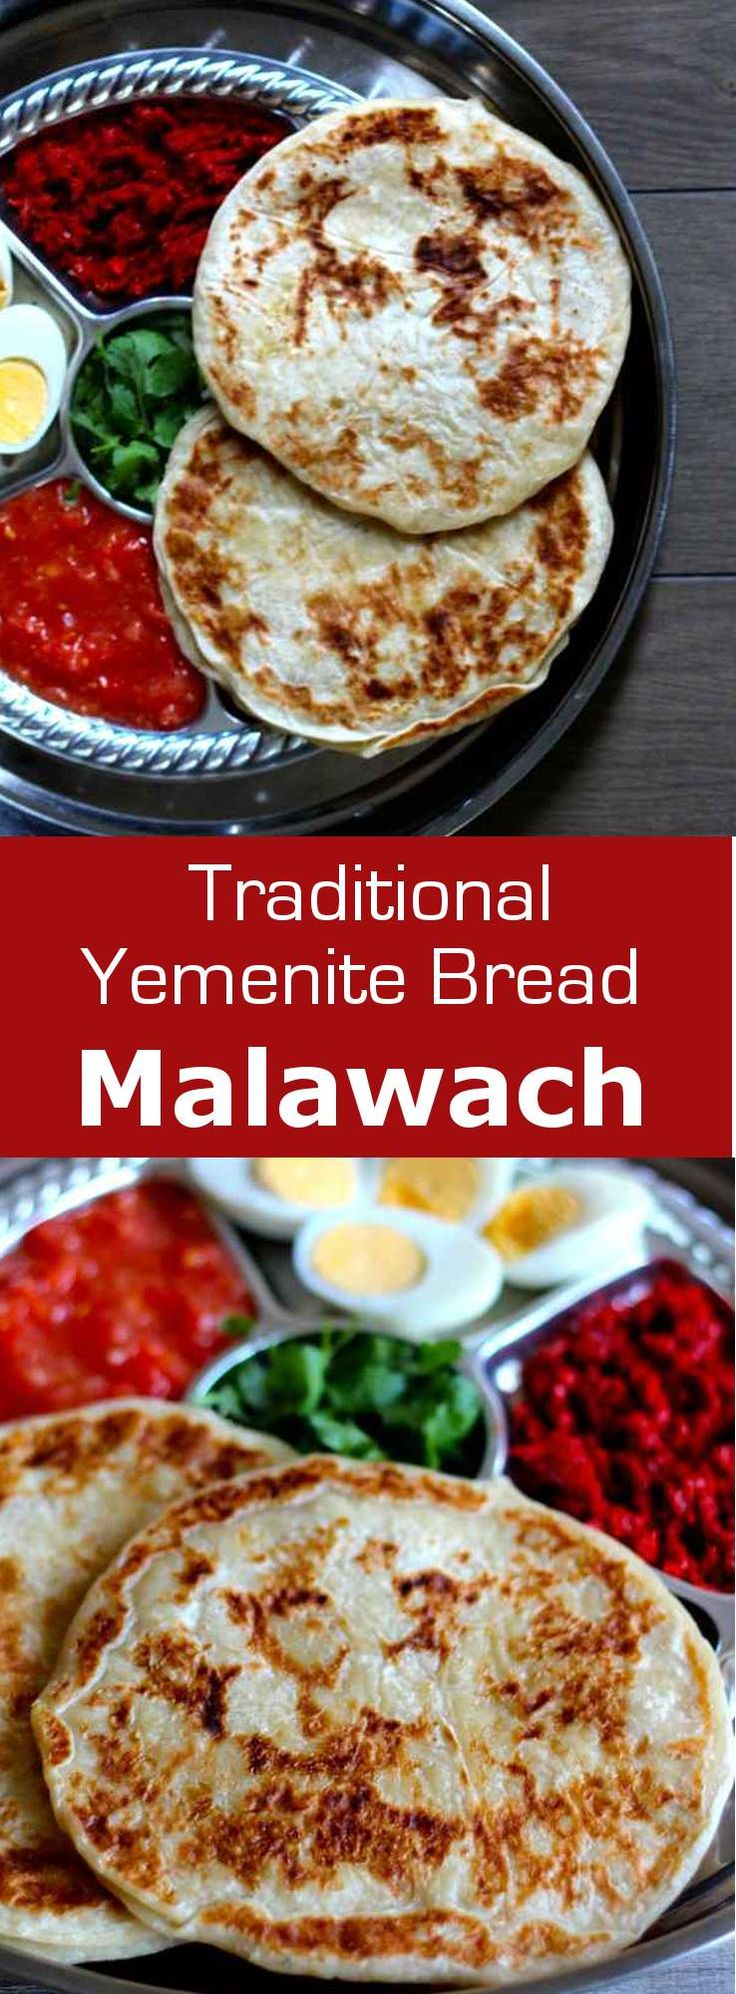 Malawach is a traditional Yemenite bread which consists of a thick crepe of thin layers of dough that are quickly fried. #bread #yemen #196flavors